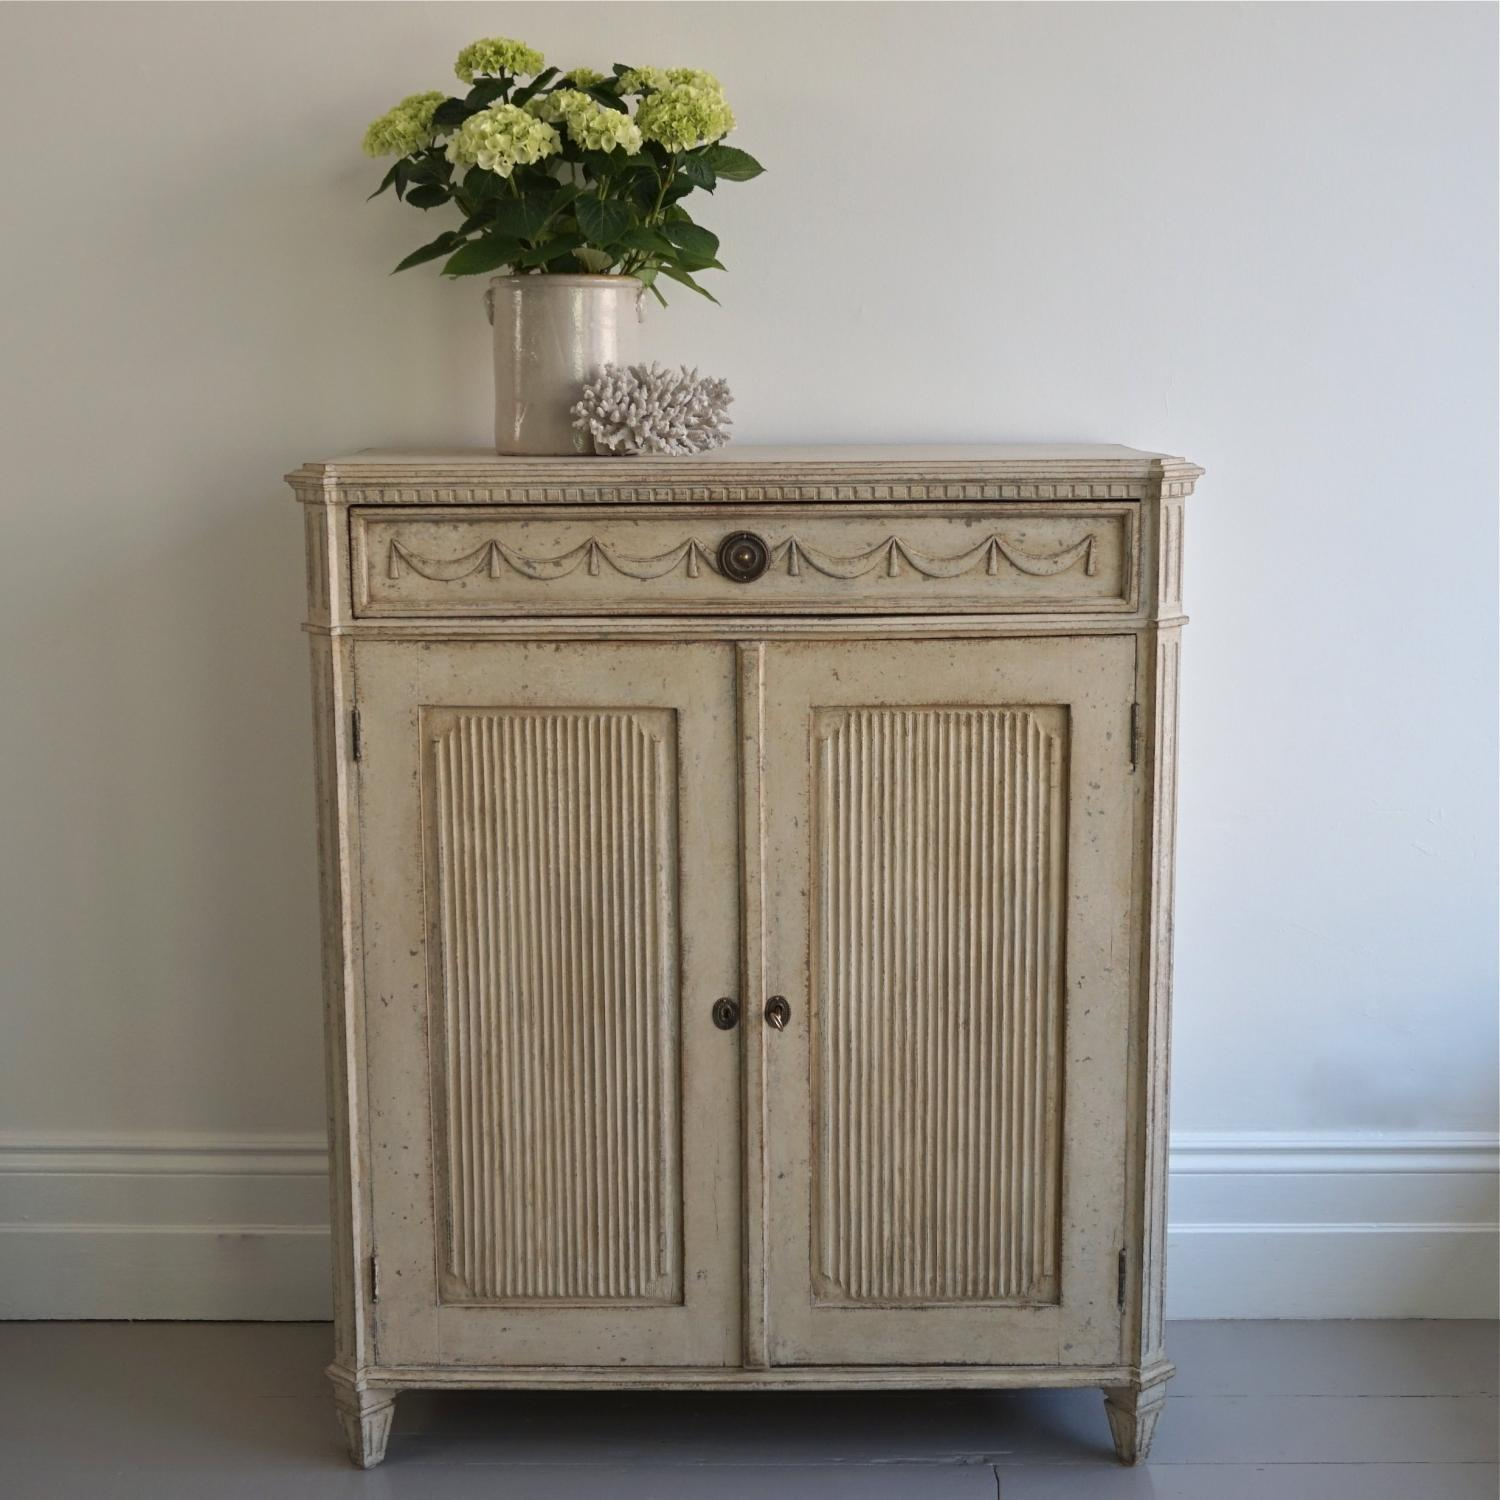 DECORATIVELY CARVED GUSTAVIAN STYLE BUFFET